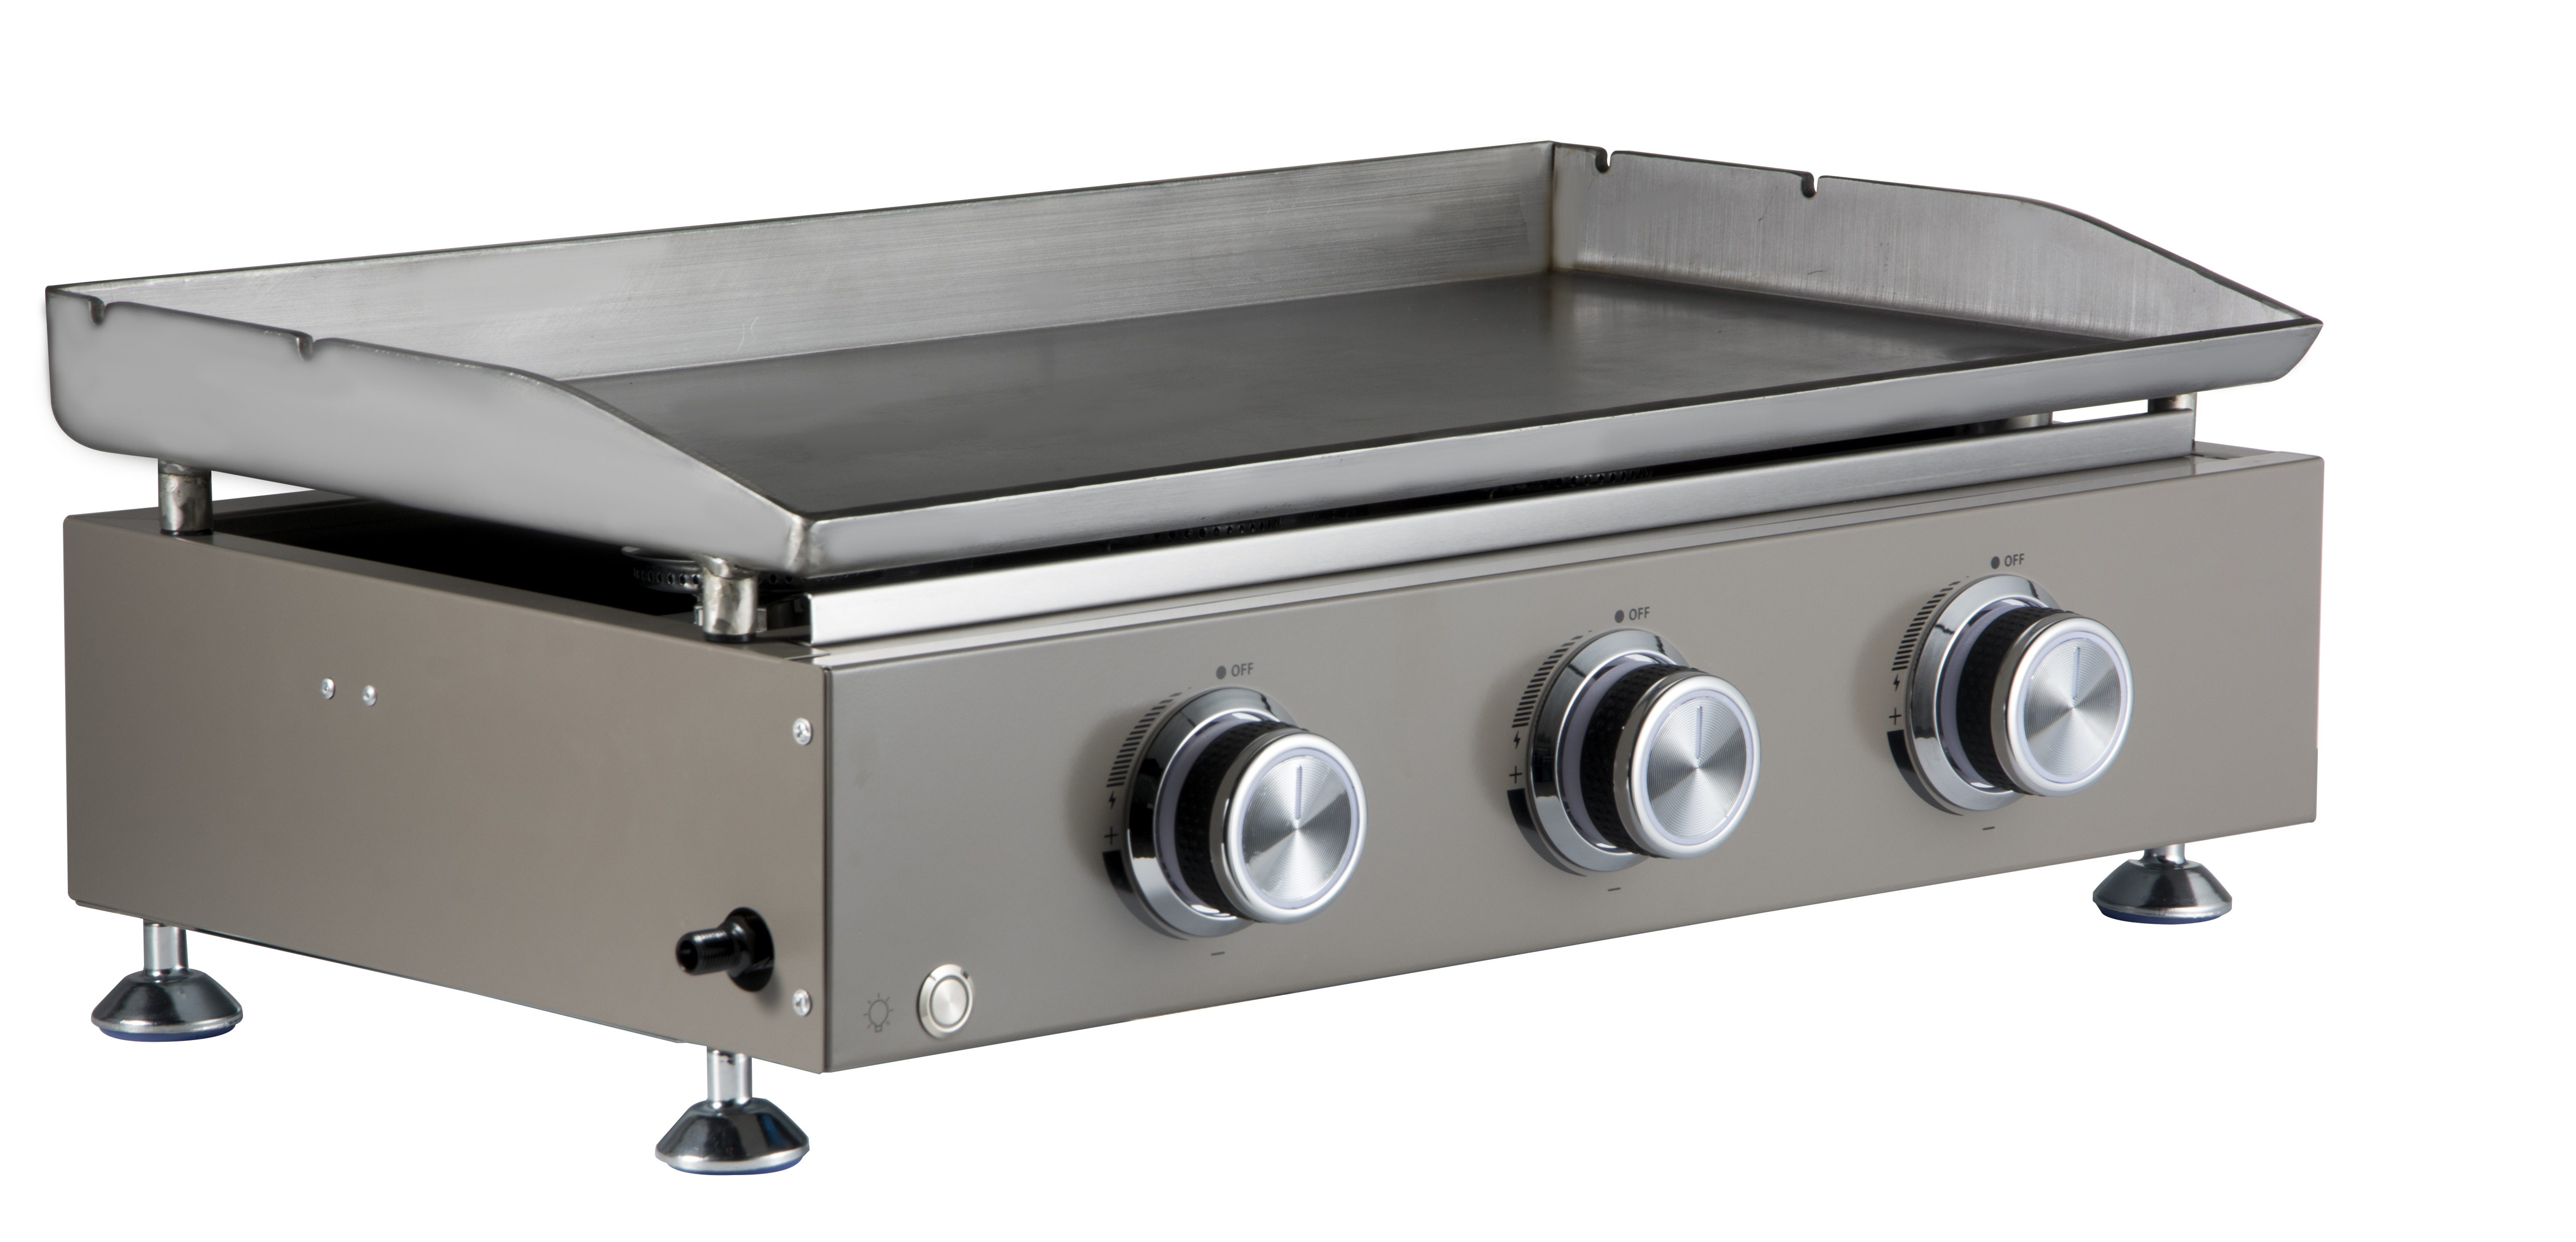 Garden 3 Burners Gas Grill Griddle